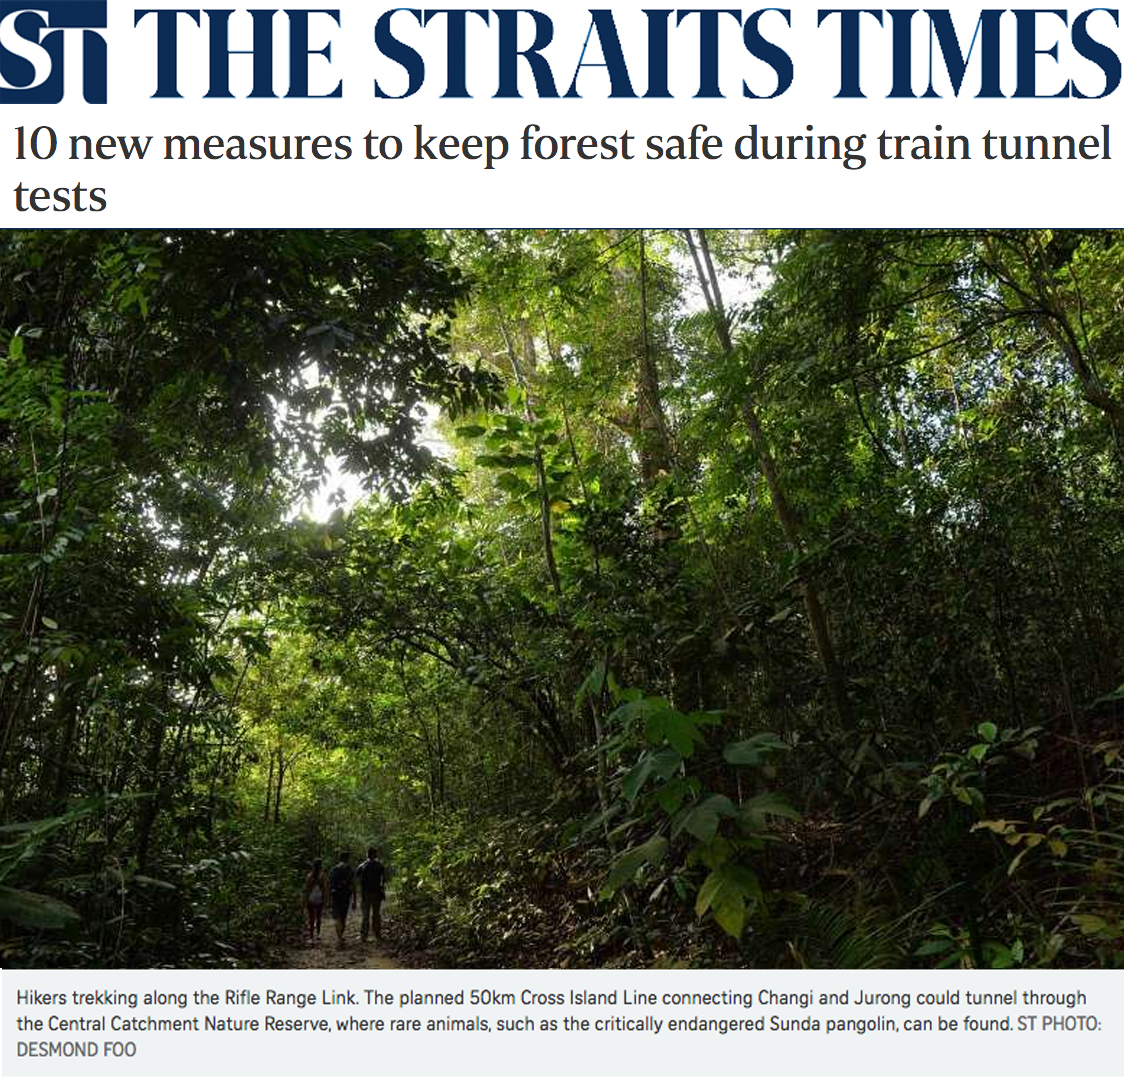 The Straits Times News 2016 - 10 new measures to keep forest safe during train tunnel tests